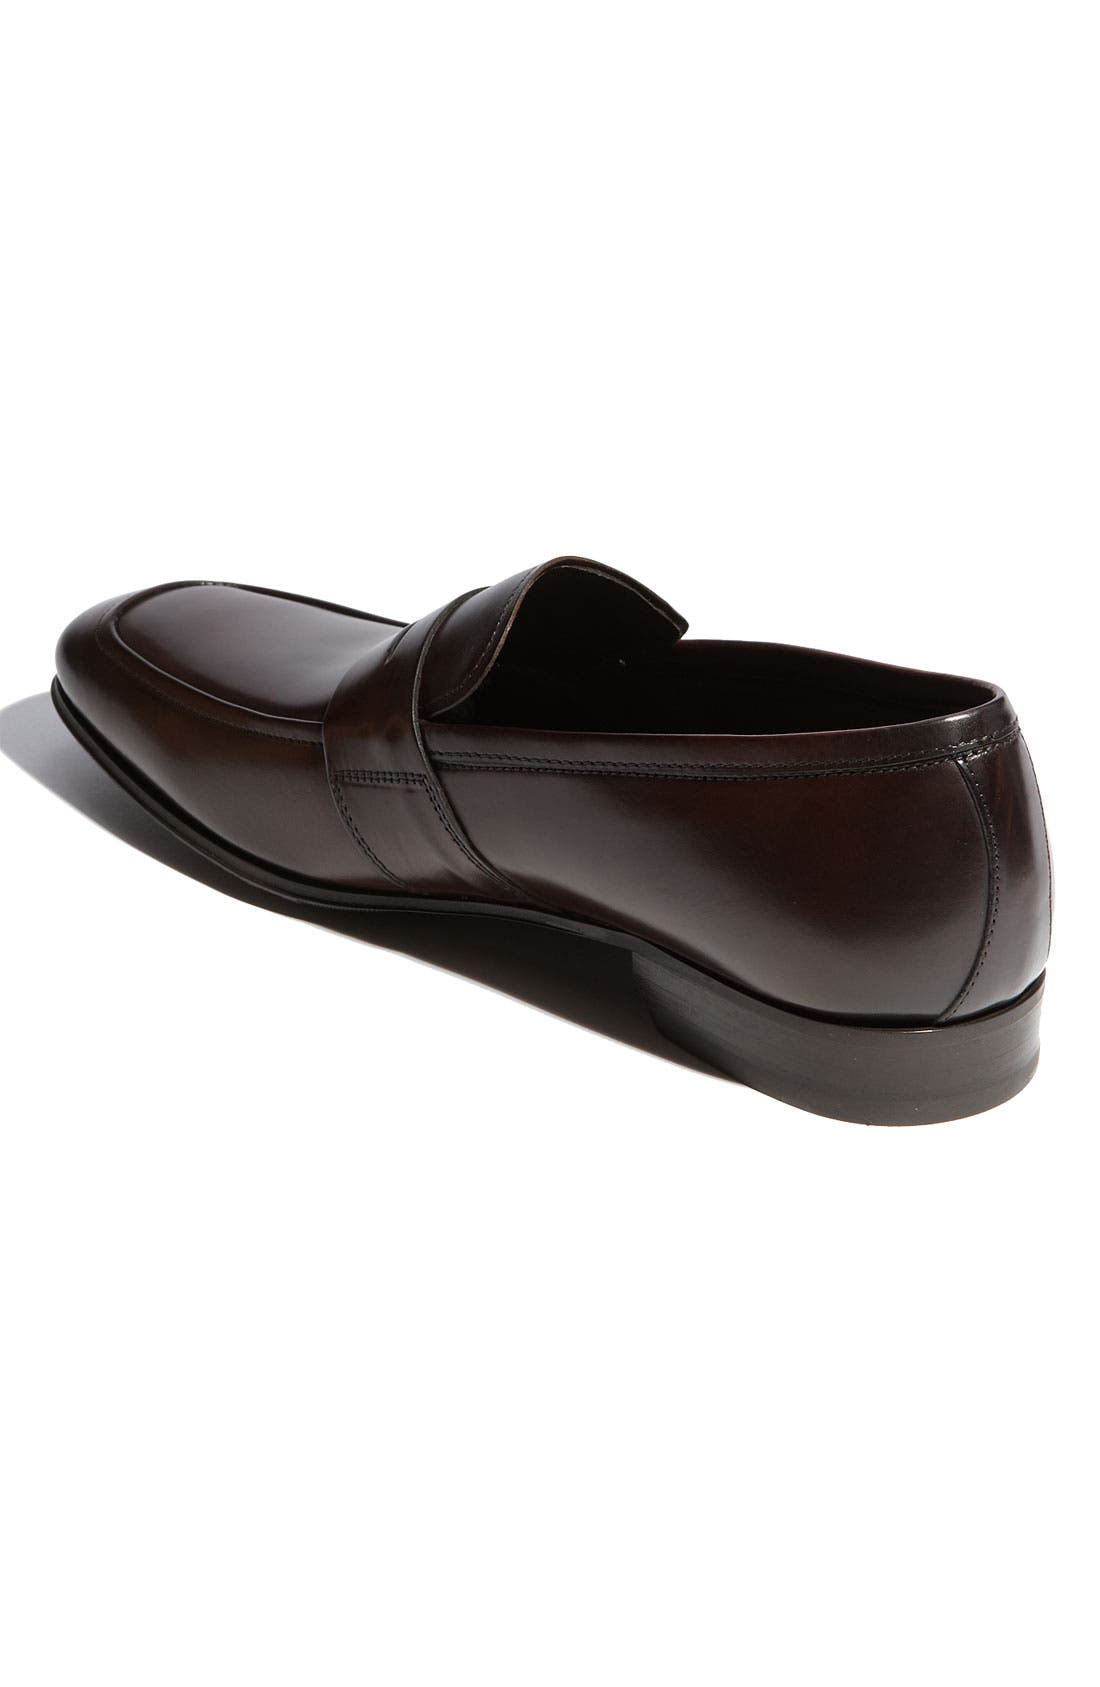 Alternate Image 2  - To Boot New York 'Senato' Penny Loafer (Men)